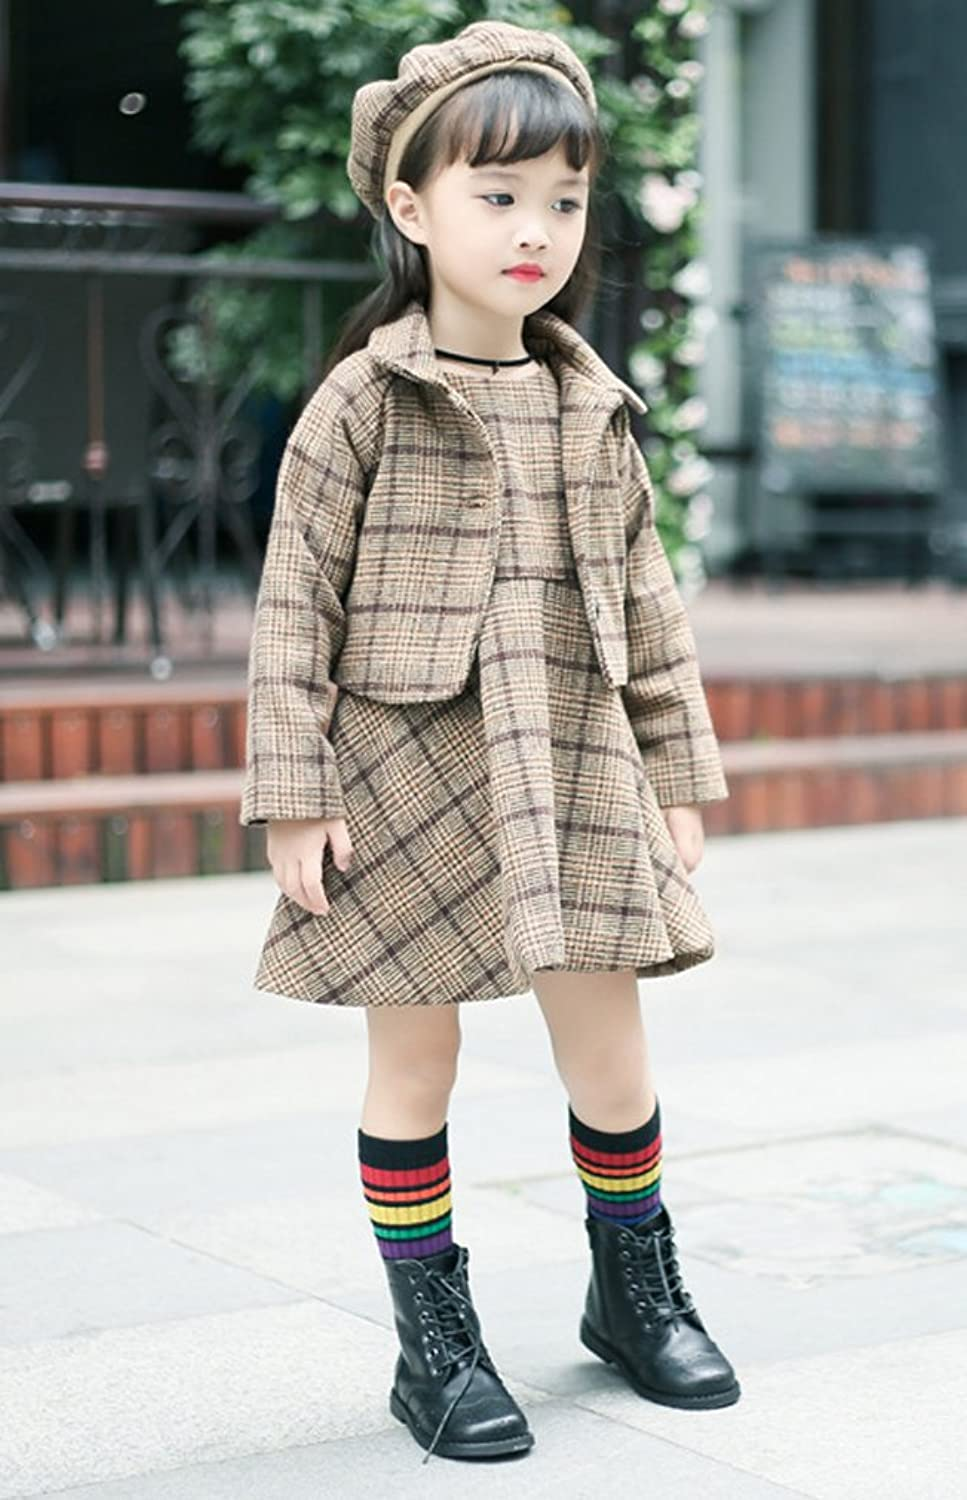 Steampunk Kids Costumes | Girl, Boy, Baby, Toddler YUFAN Little Girls Gray and Brown Plaid Dress Set 3 Pieces Dress Jacket With Beret Cap $26.99 AT vintagedancer.com